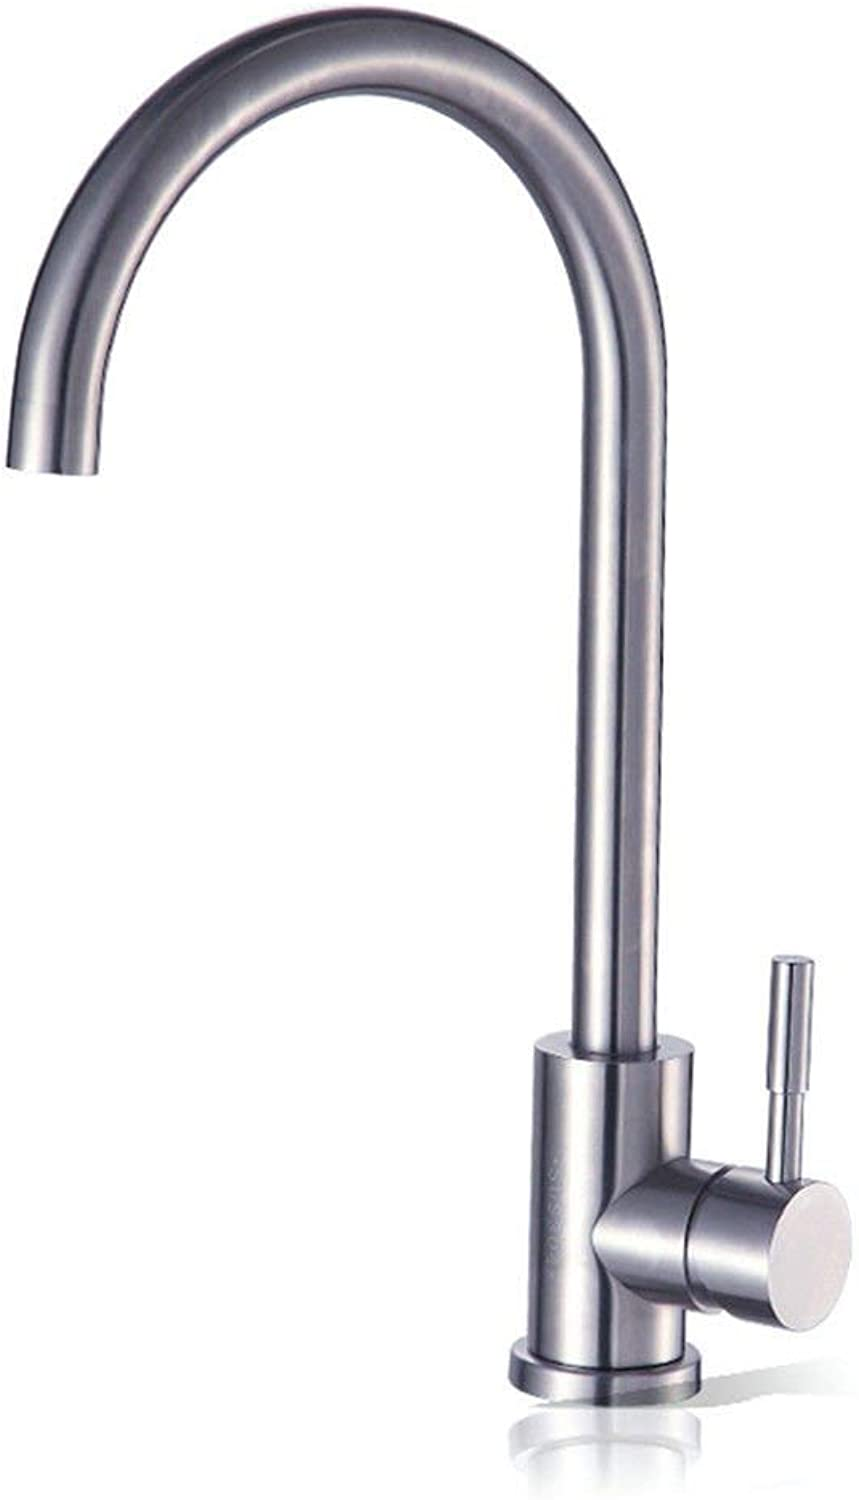 Oudan Kitchen Mixer tap Kitchen Sink tap hot and Cold Water, 304 Stainless Steel Sink Mixer (color   -, Size   -)